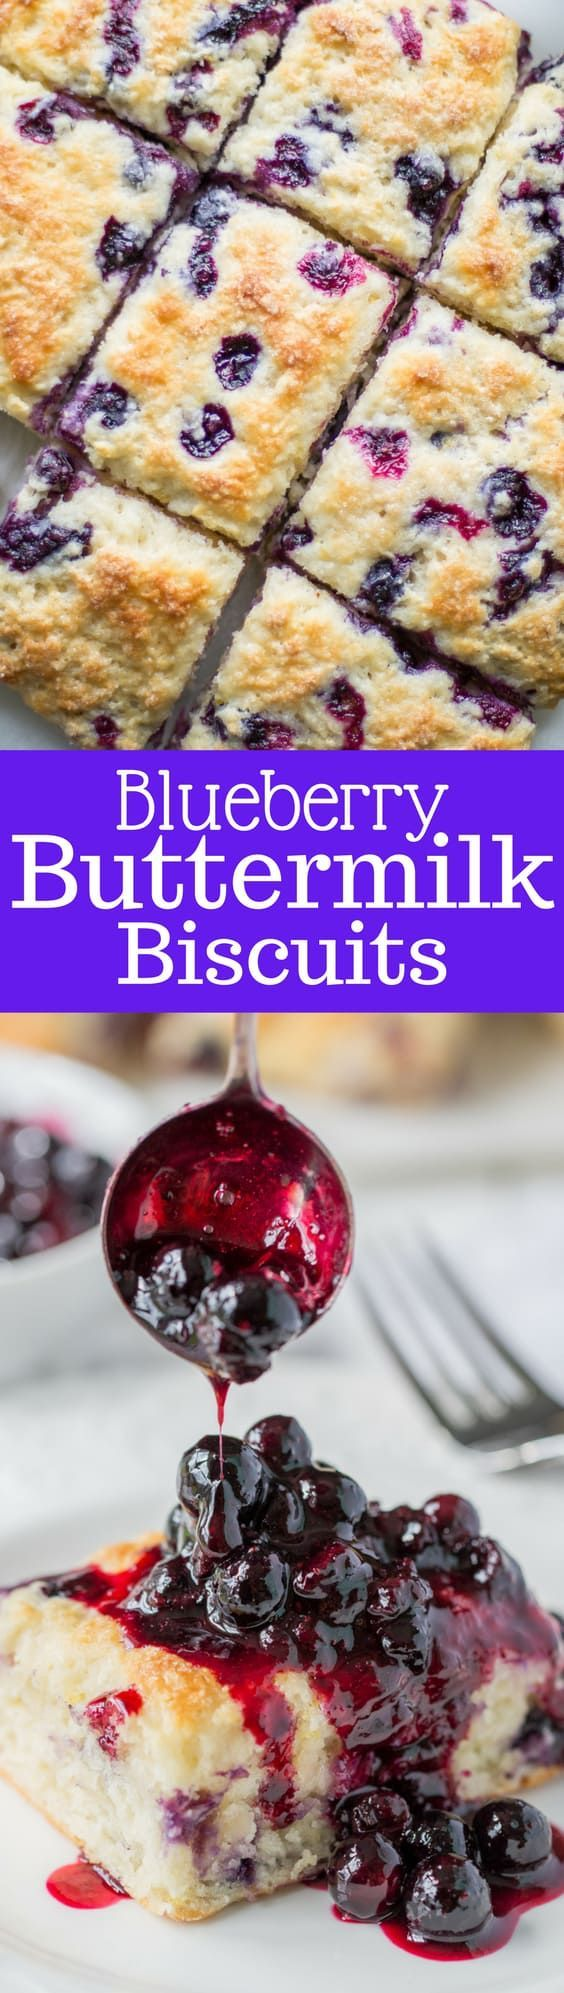 Blueberry Buttermilk Biscuits with a warm Blueberry Sauce ~ from www.savingdessert.com #savingroomfordessert #blueberry #muffins #biscuits #blueberrysauce #blueberries #buttermilkbiscuits